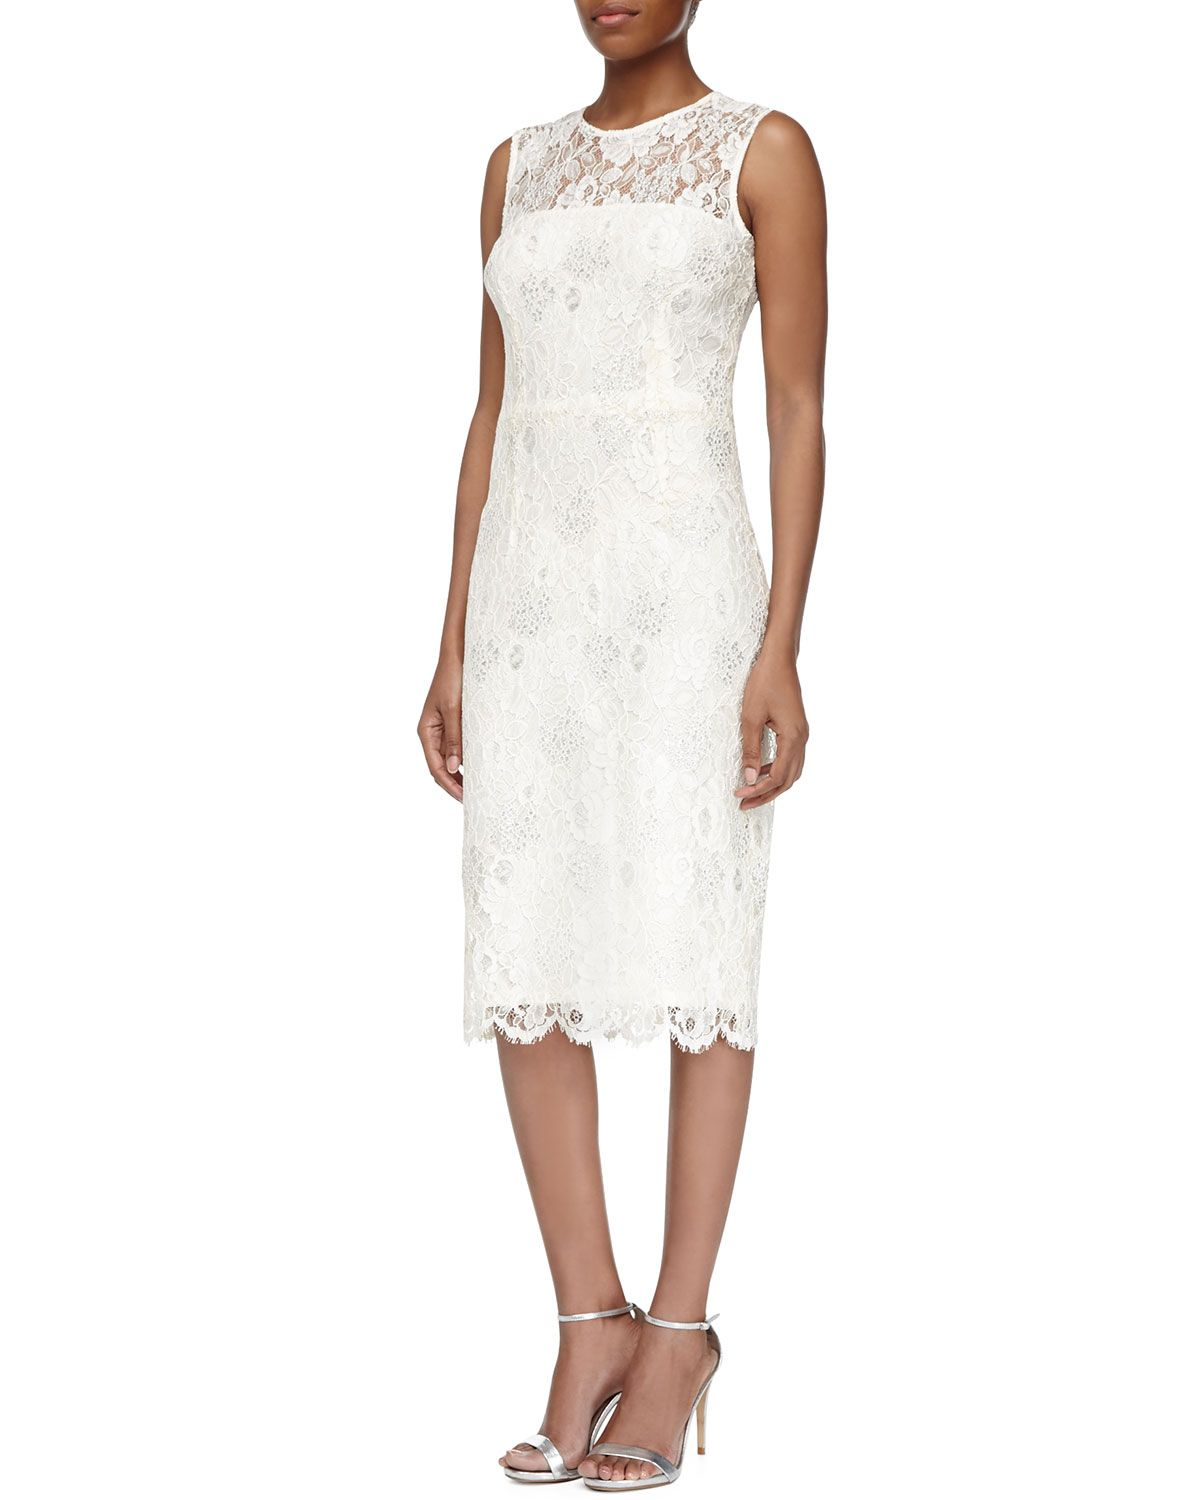 Sleeveless Illusion Lace Cocktail Dress | Lace cocktail dresses ...